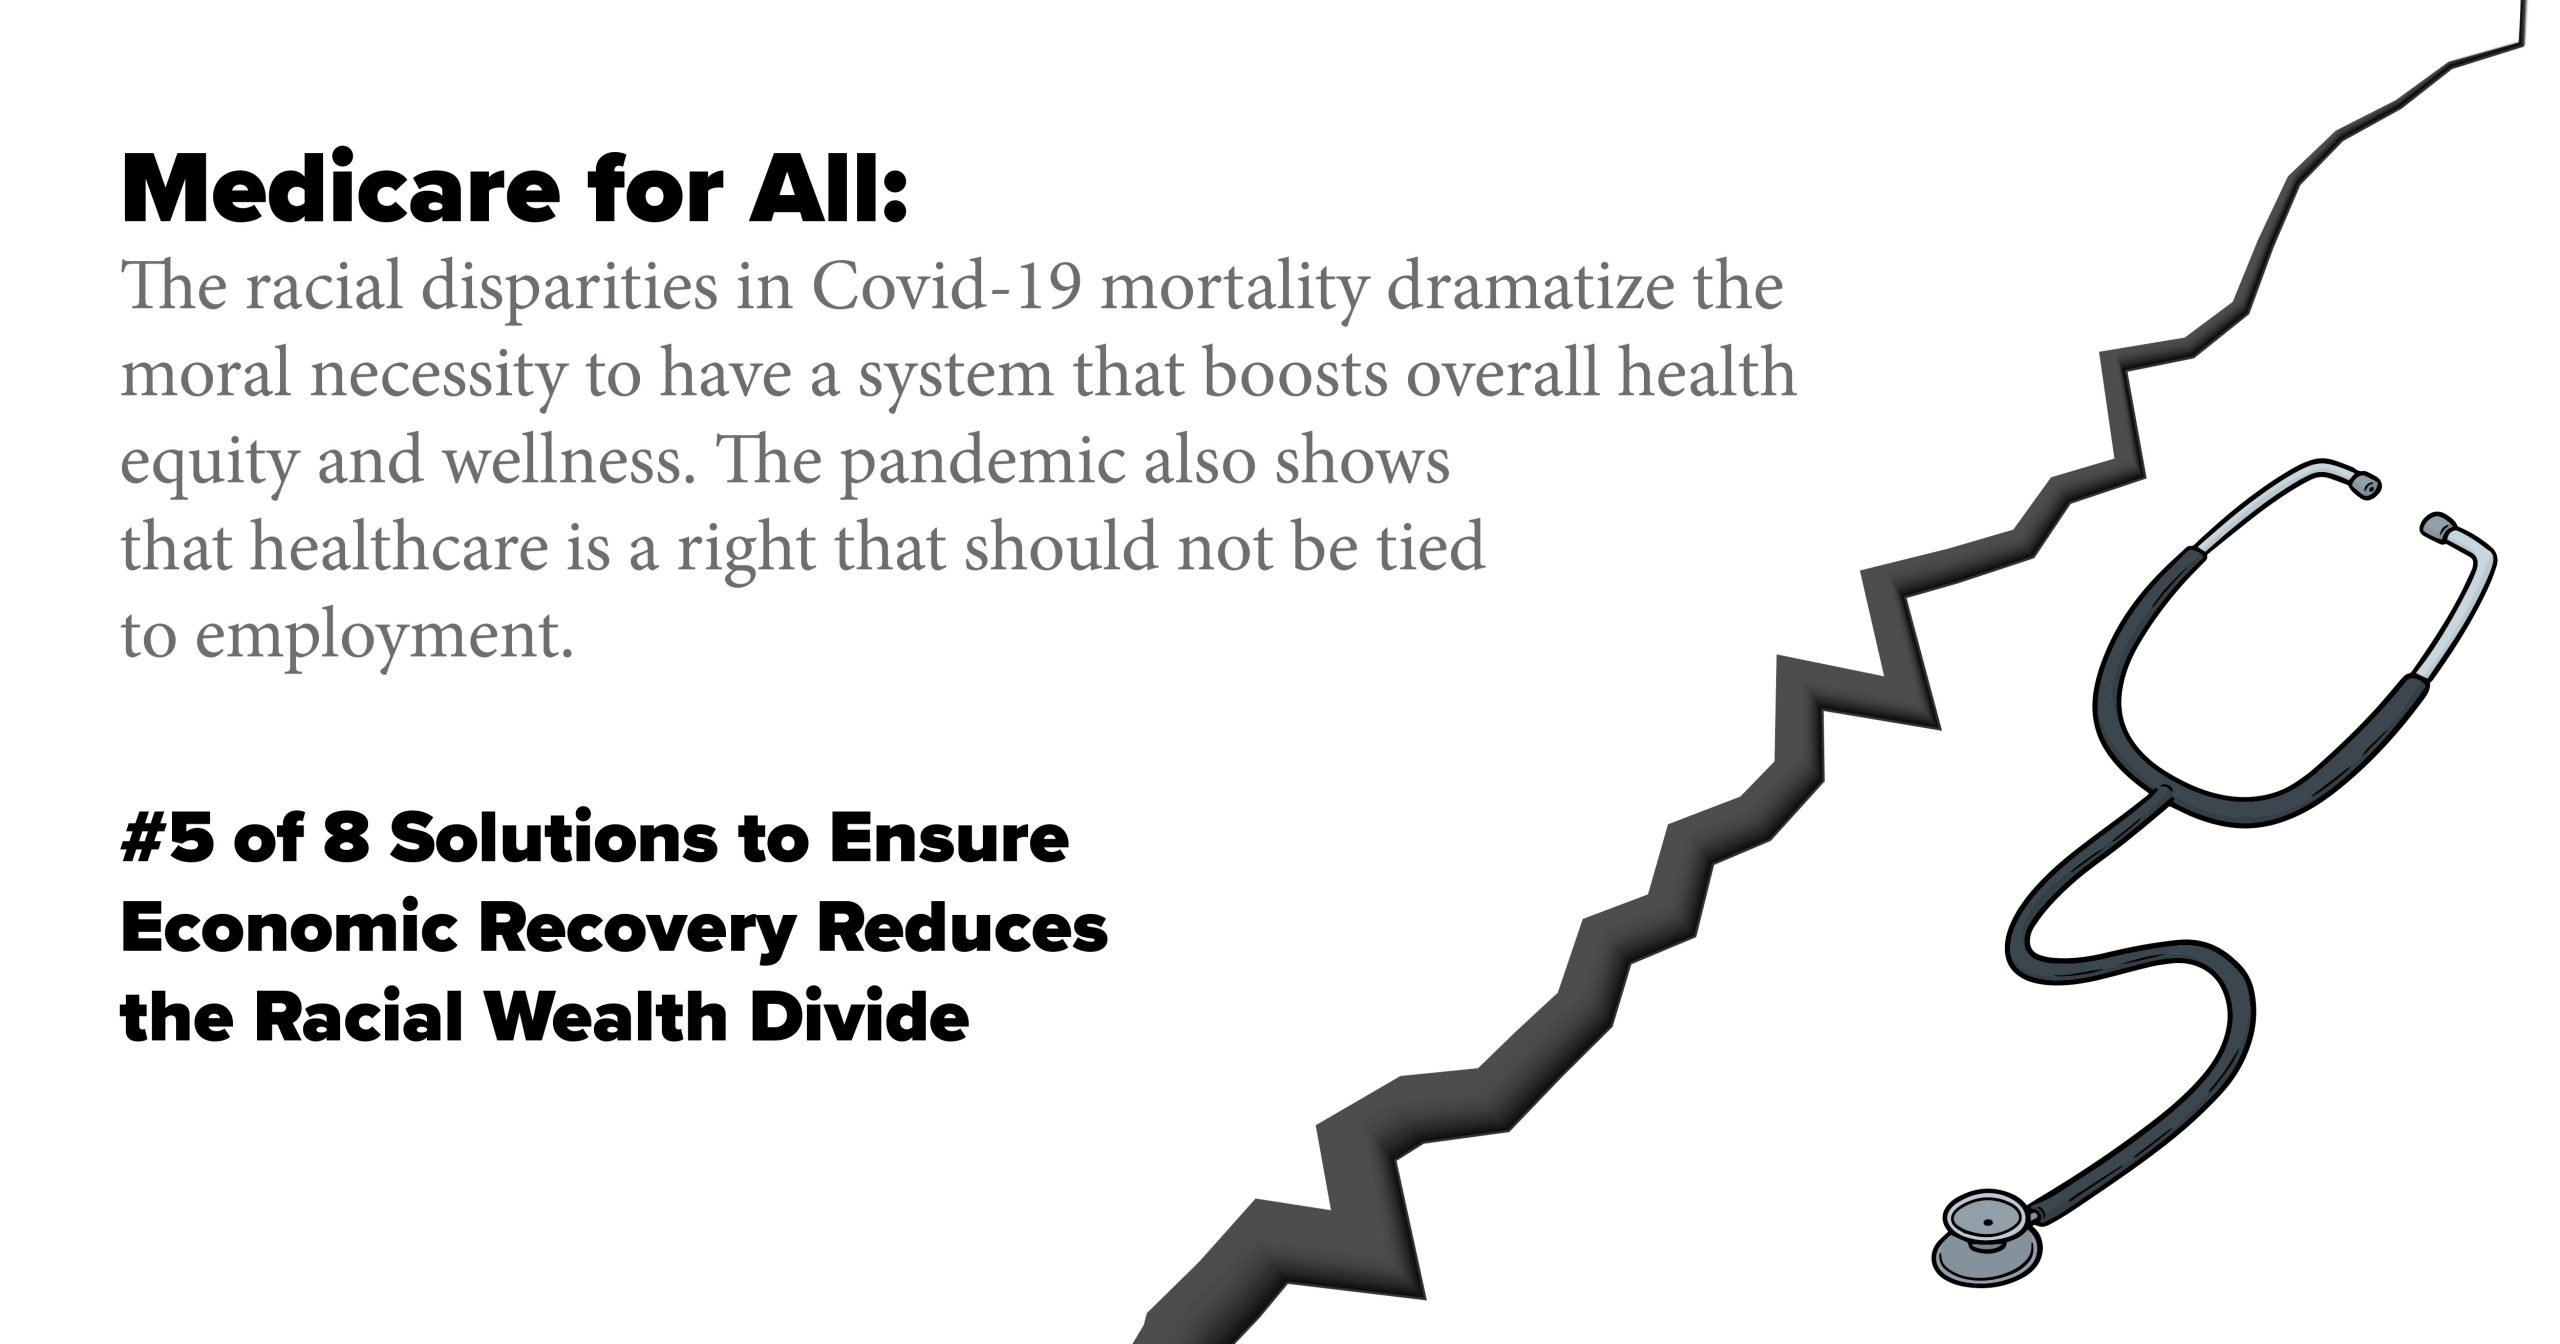 Medicare for All: The racial disparities in Covid-19 mortality dramatize the moral necessity to have a system that boosts overall health equity and wellness. The pandemic also shows that healthcare is a right that should not be tied to employment.